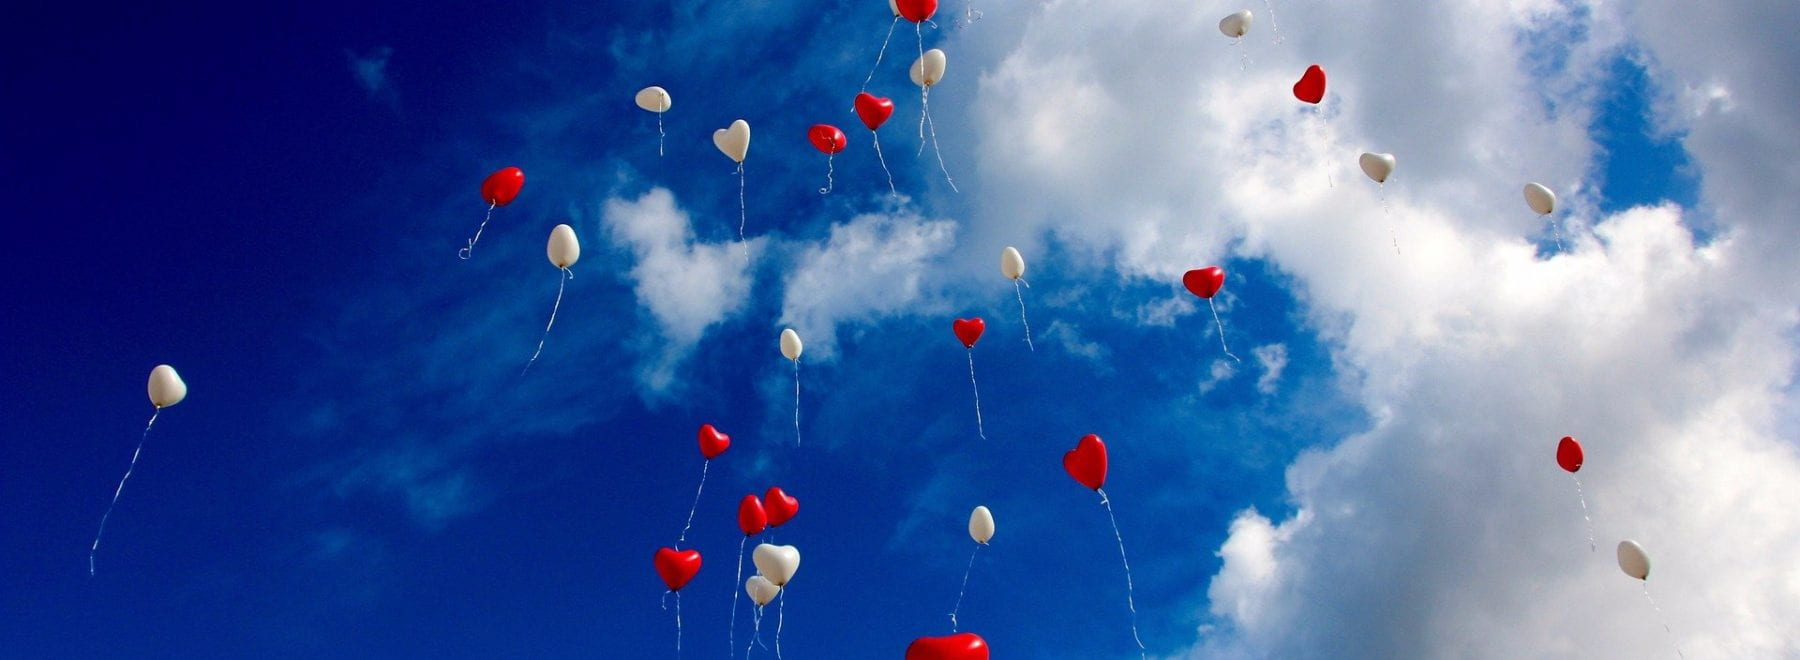 Heart shaped red and white balloons in the sky